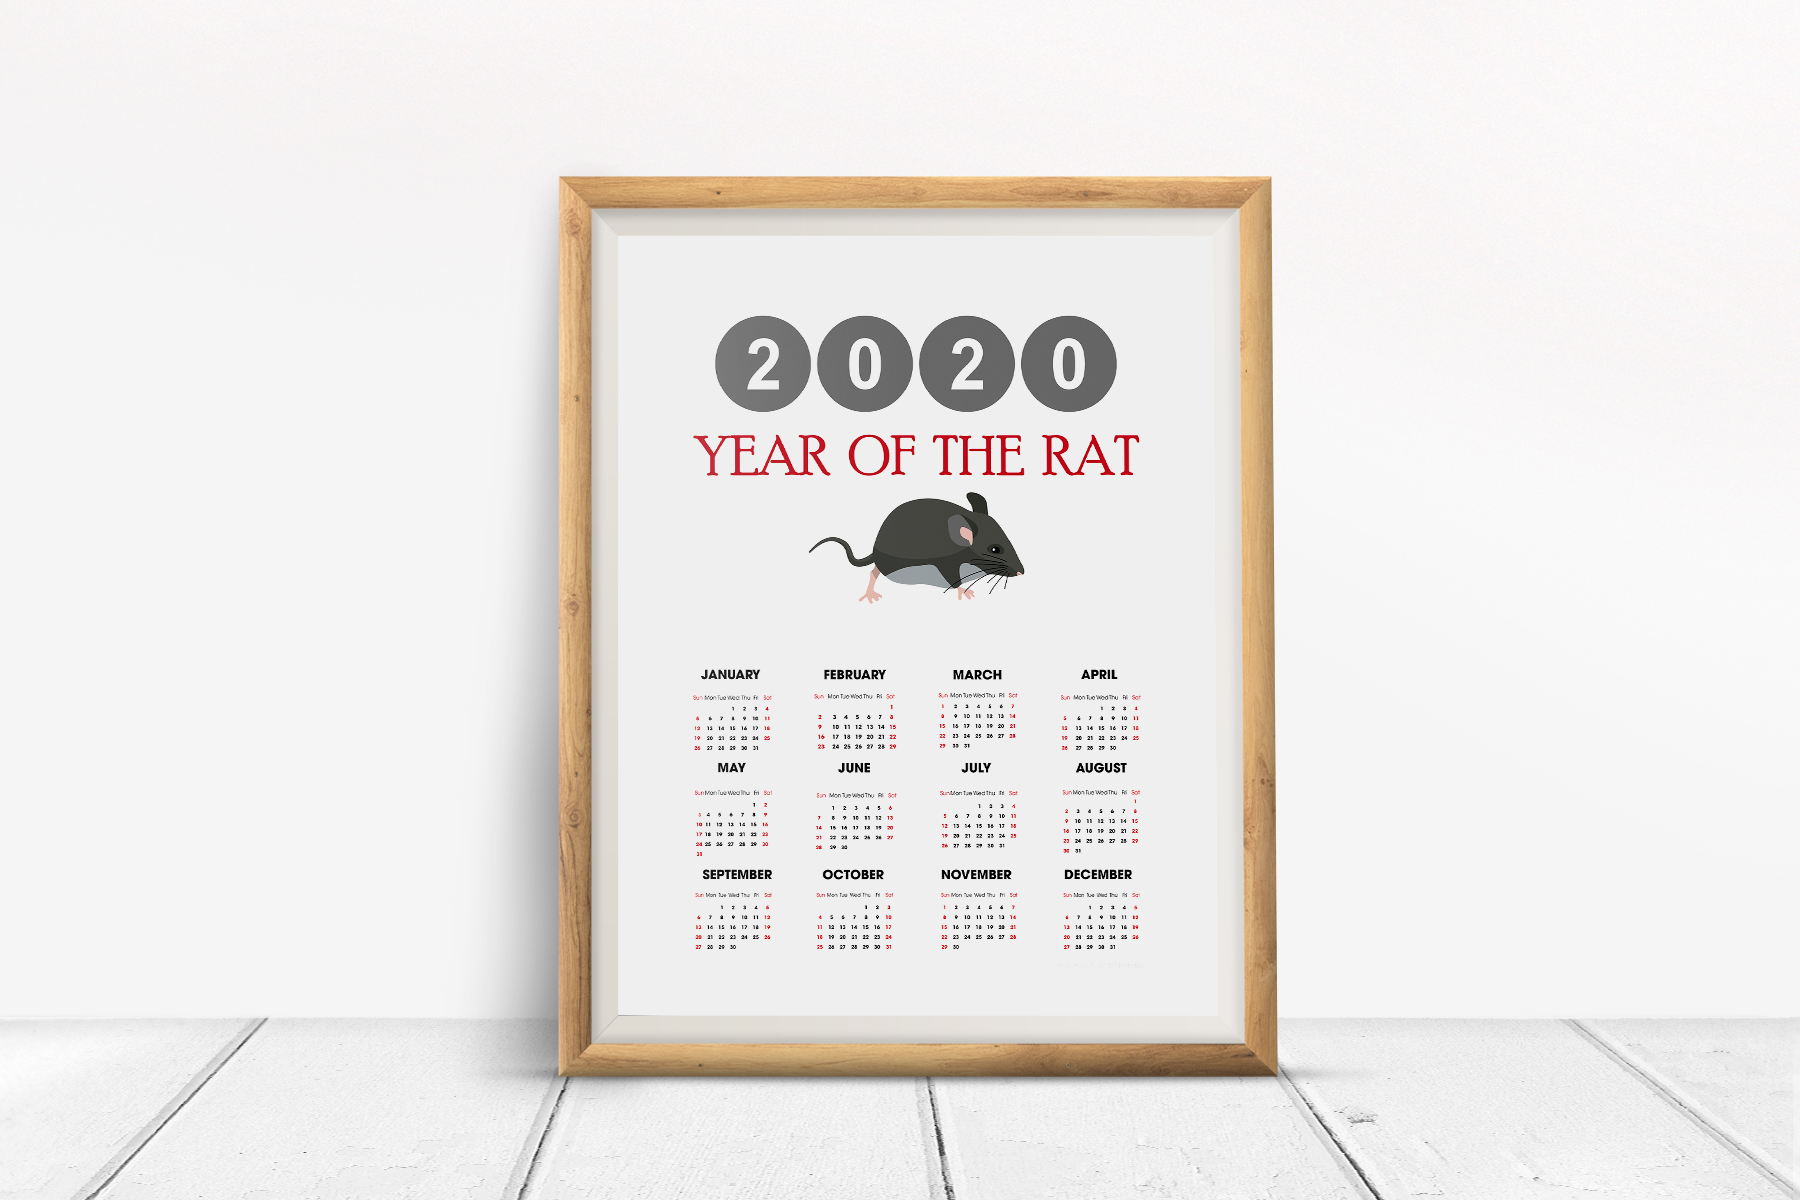 2020 Rat Yearly Calendar example image 2